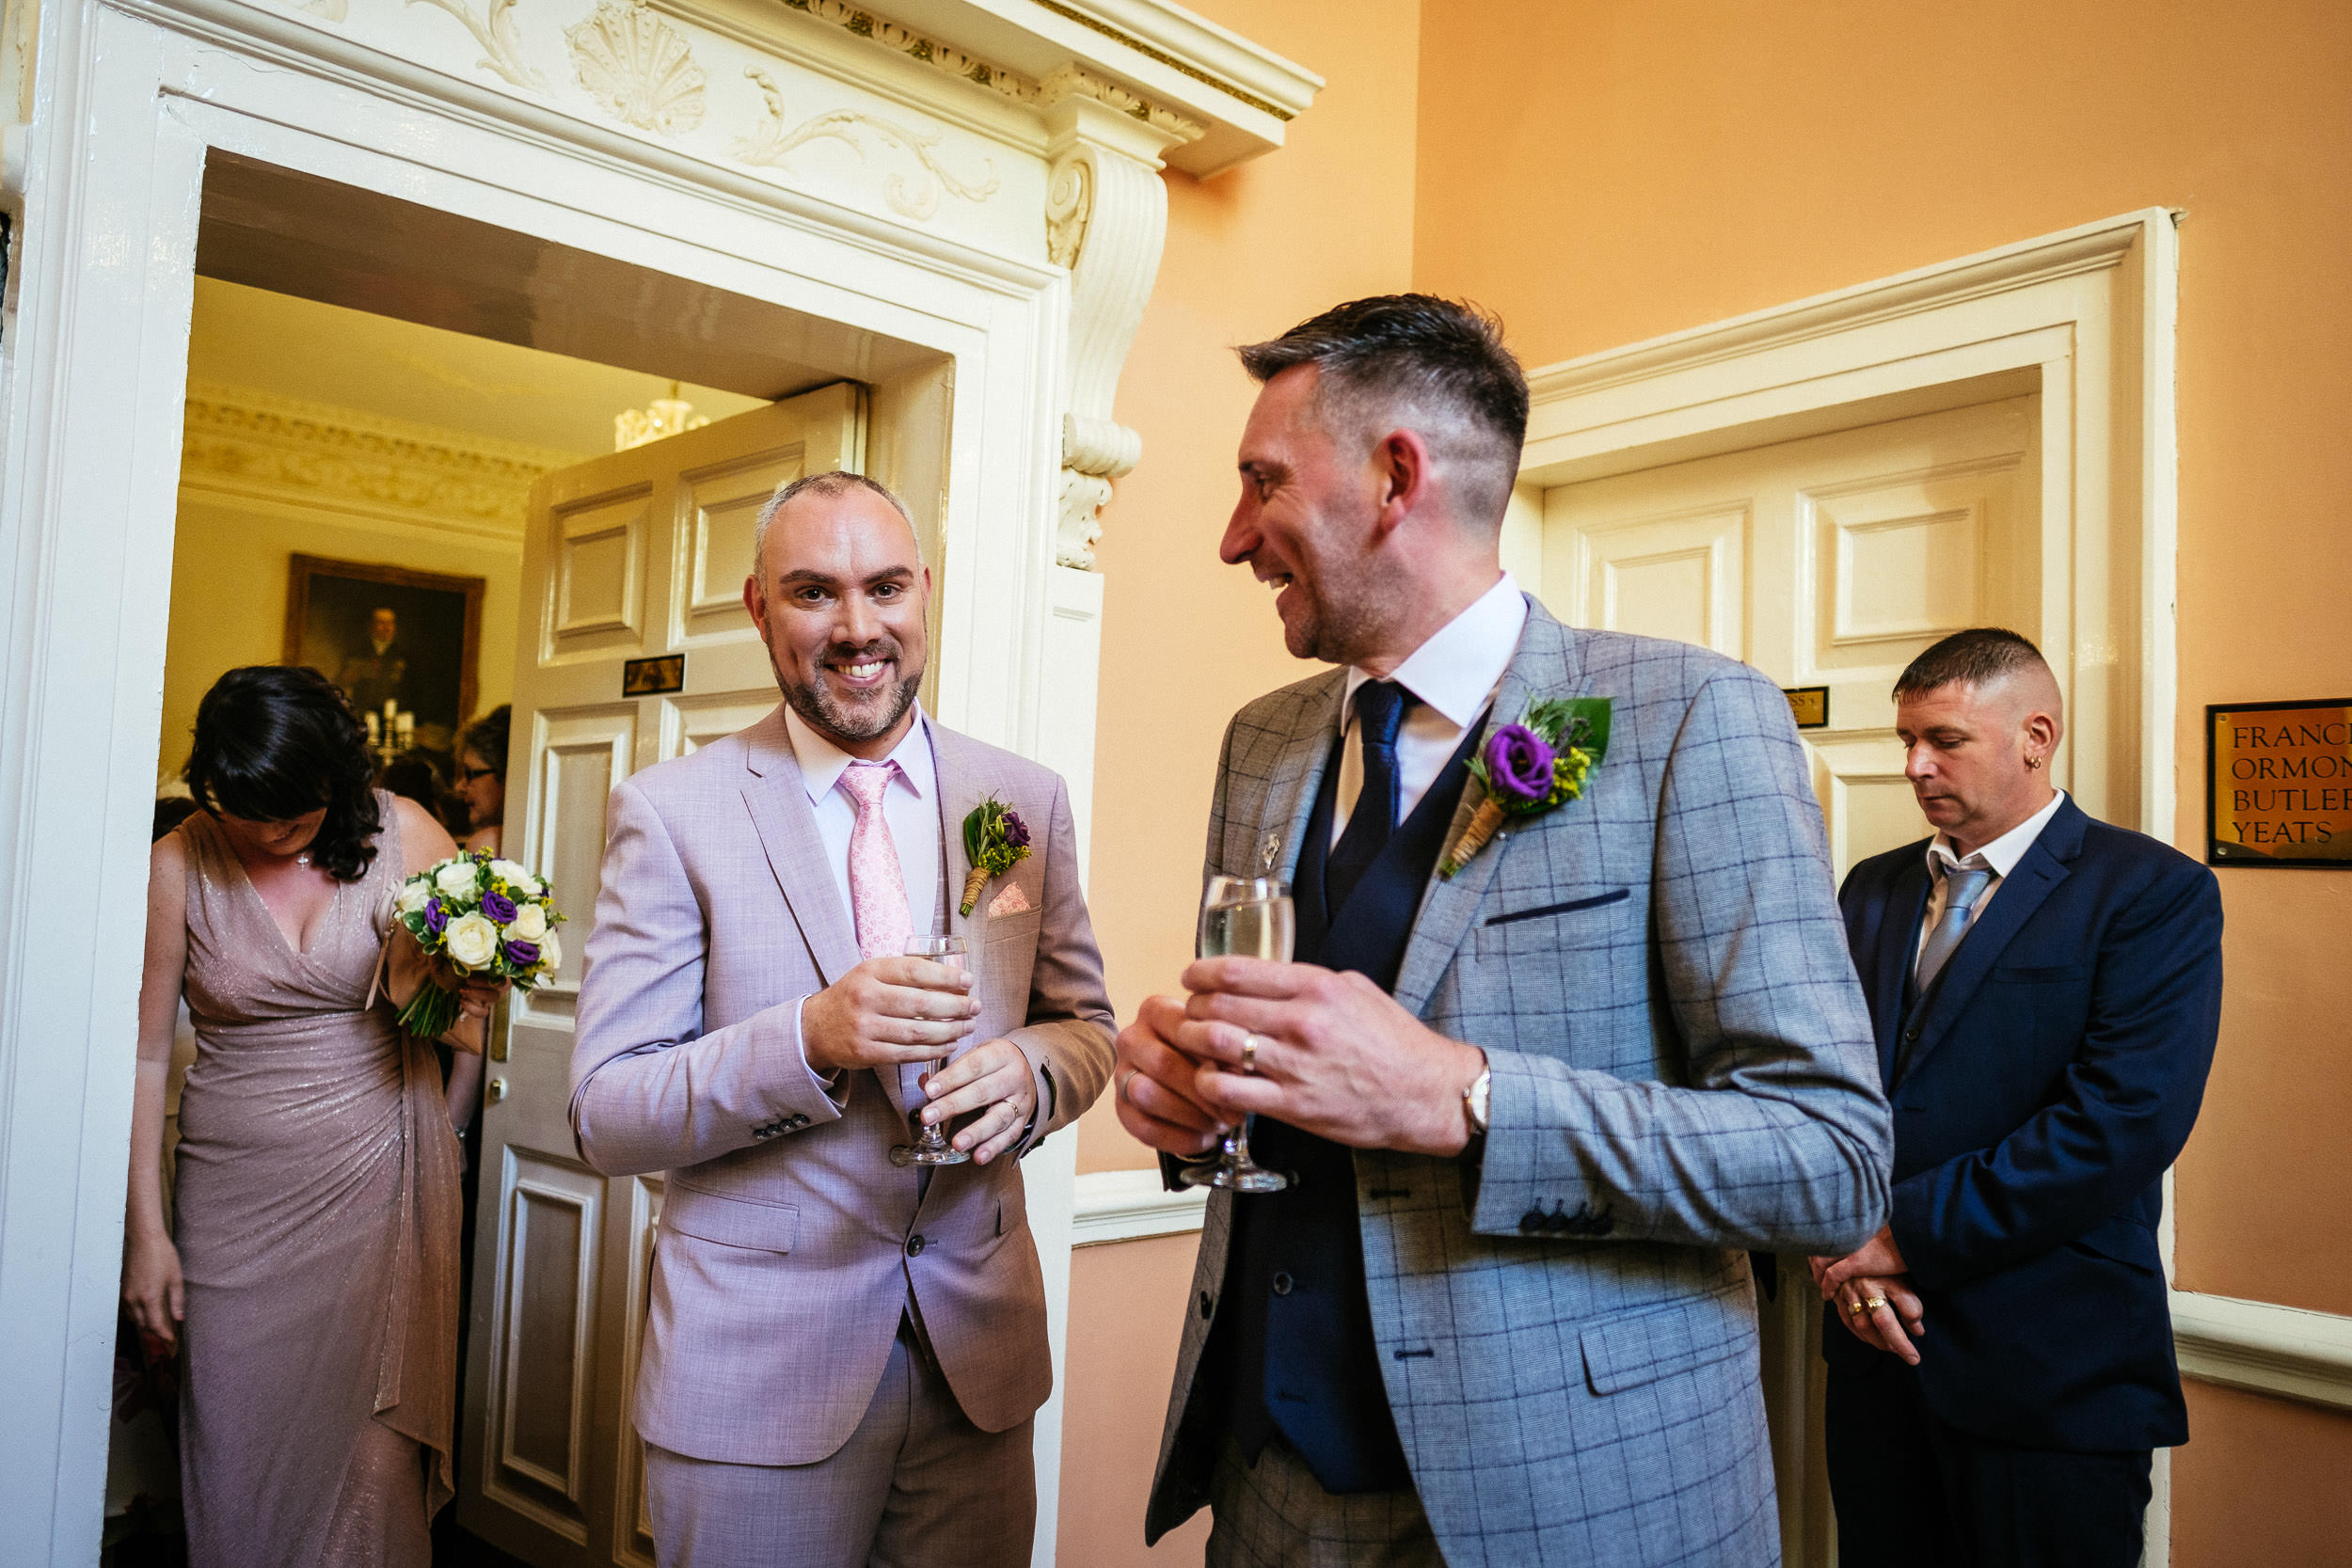 2 grooms having champagne